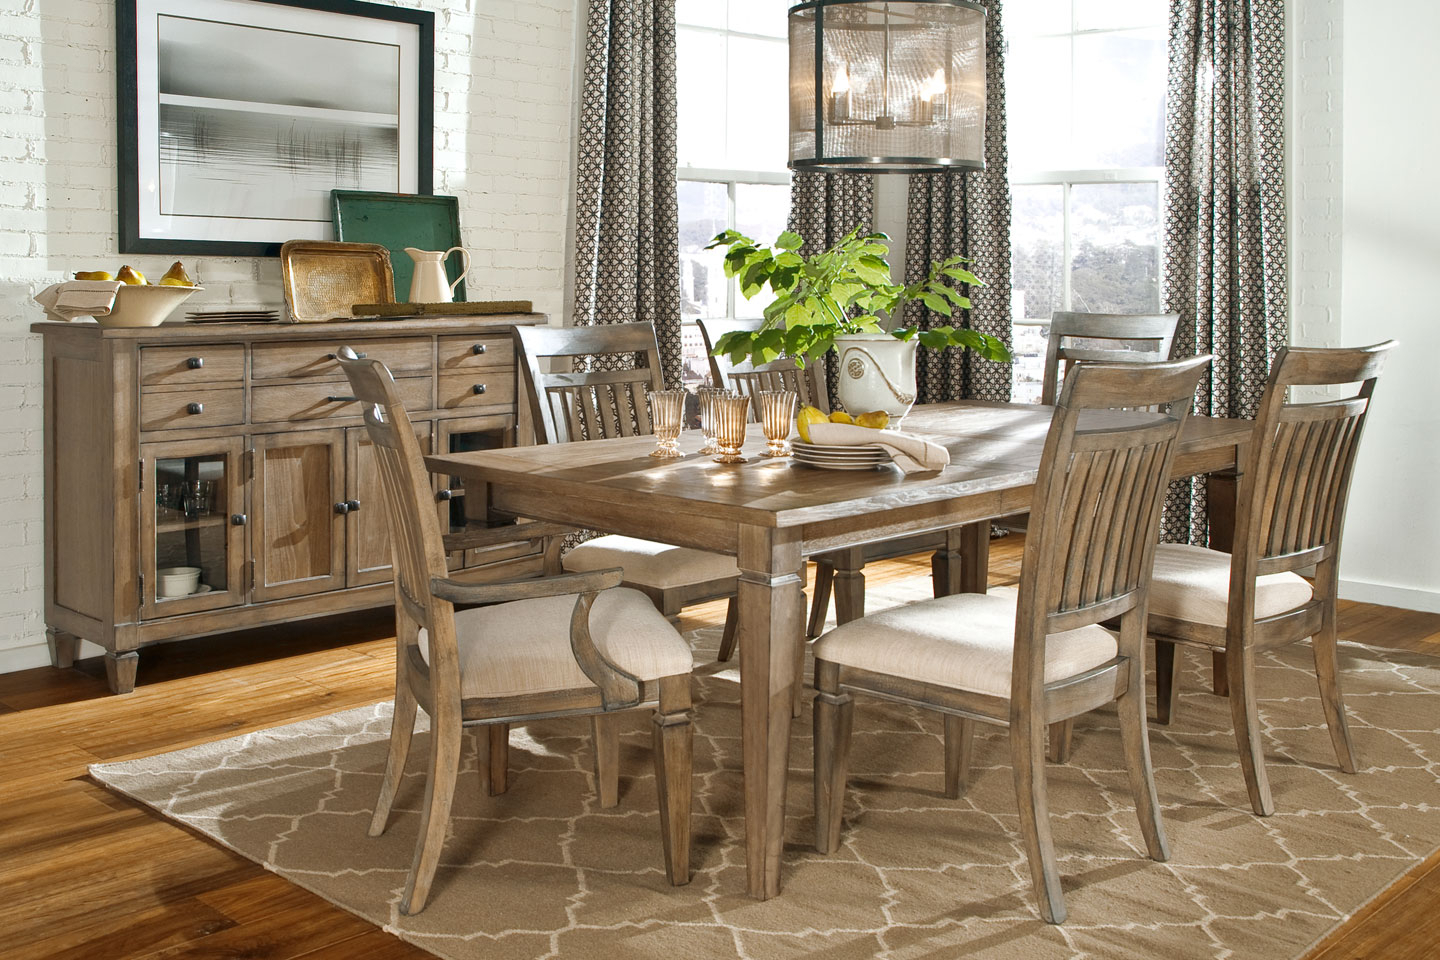 2019 Beautiful Rustic Kitchen Tables To Inspire You — Office Pdx for Large Rustic Look Dining Tables